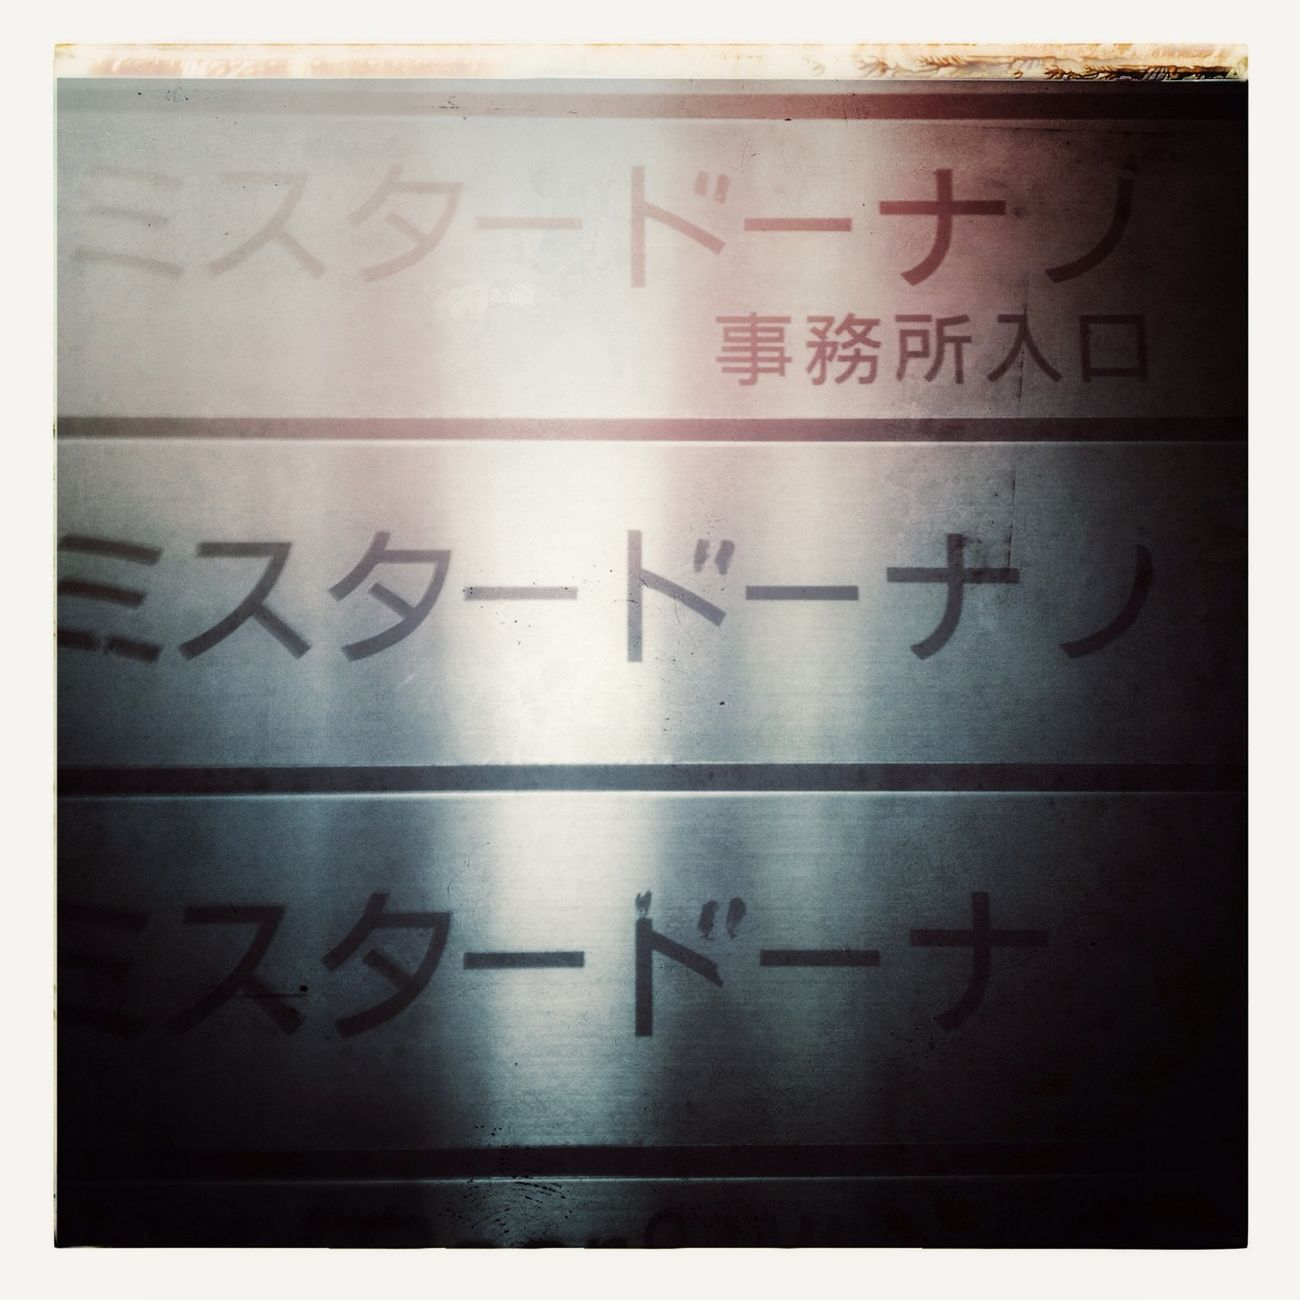 Out Of Service ミスタードーナノ Sign Board In The Elevator